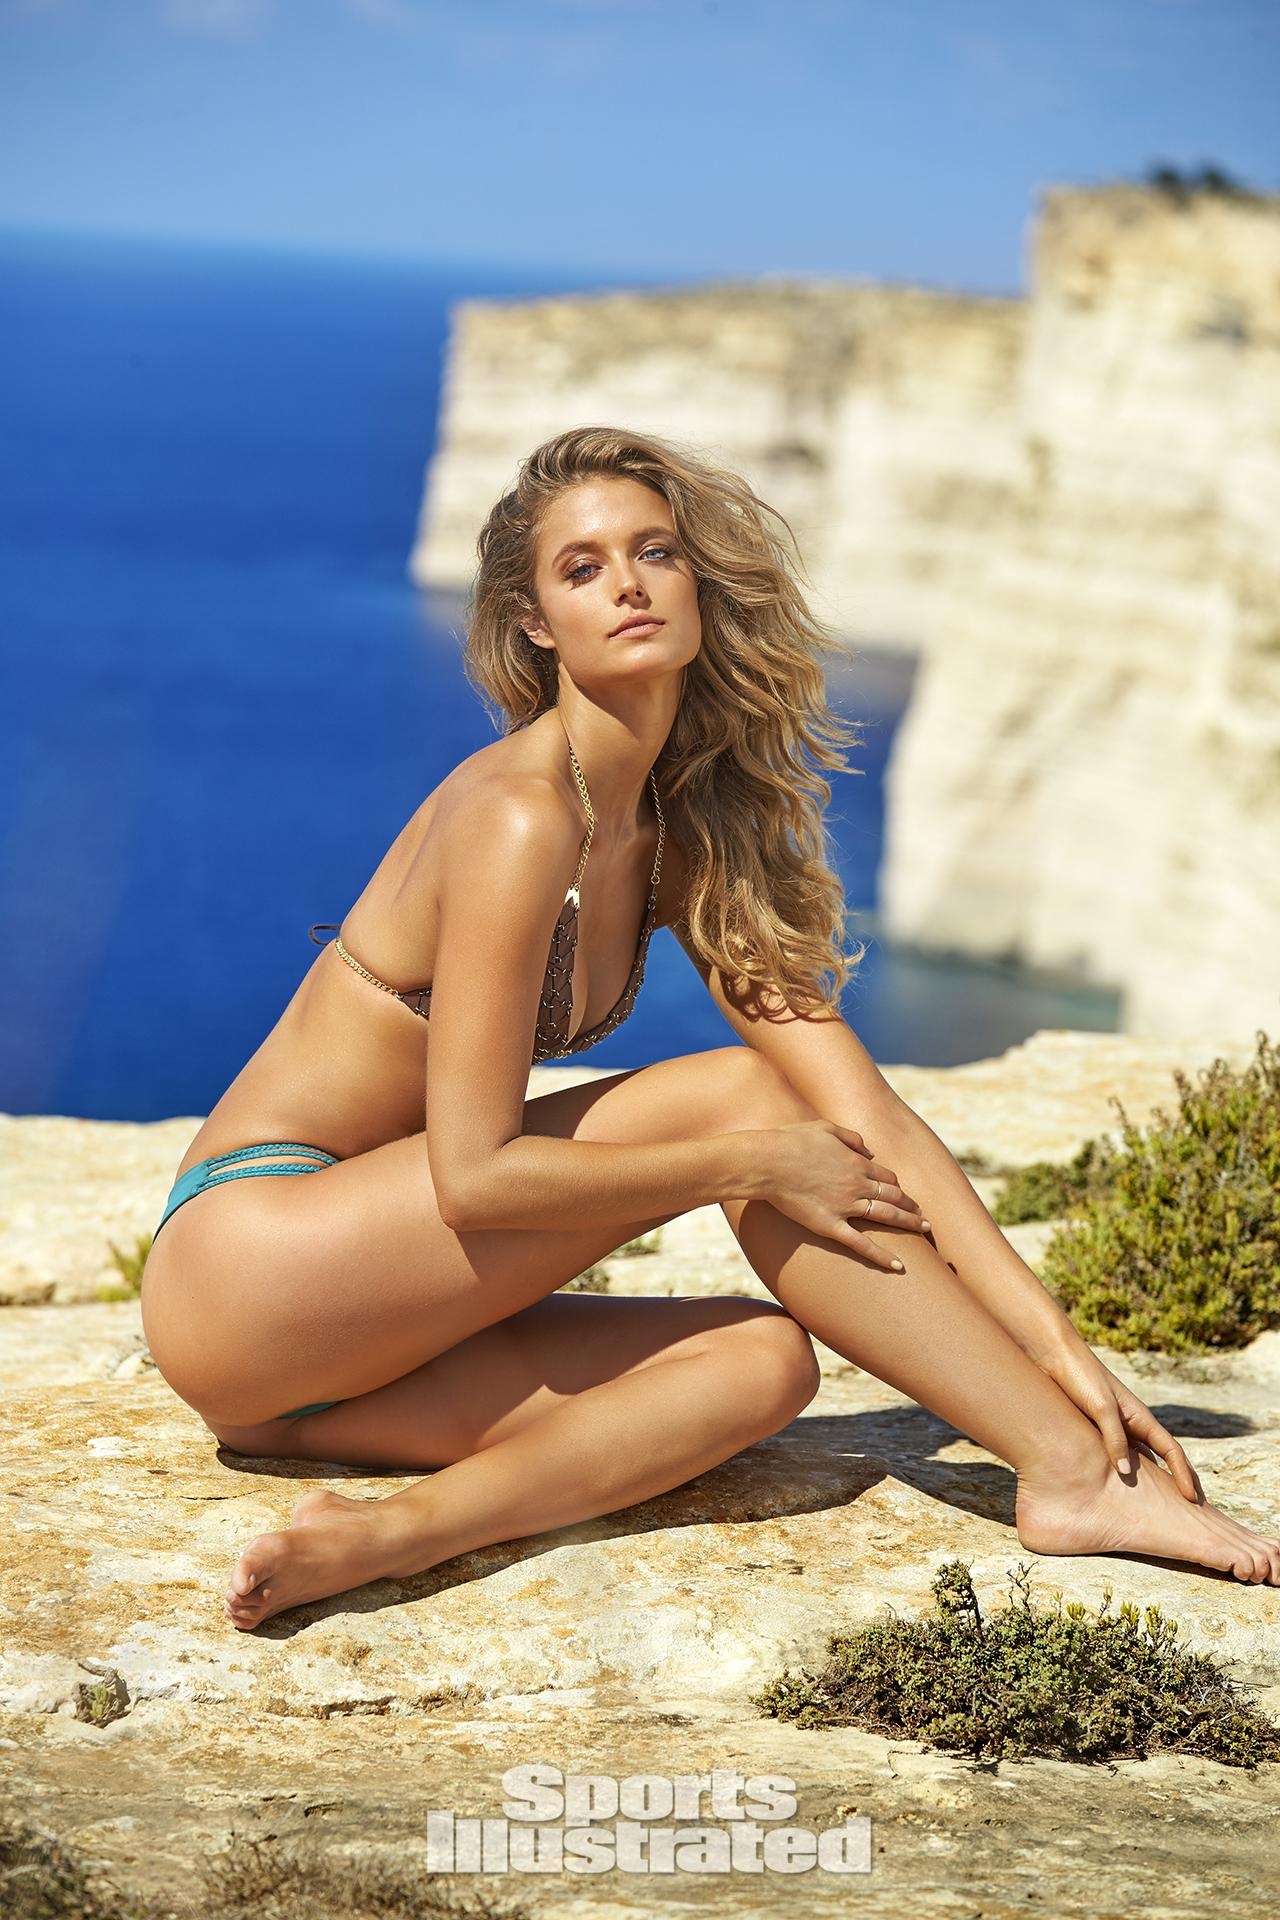 Kate Bock was photographed by Ben Watts in Malta. Top by Ten Pounds of Feathers. Swimsuit by AYRA SWIMWEAR.